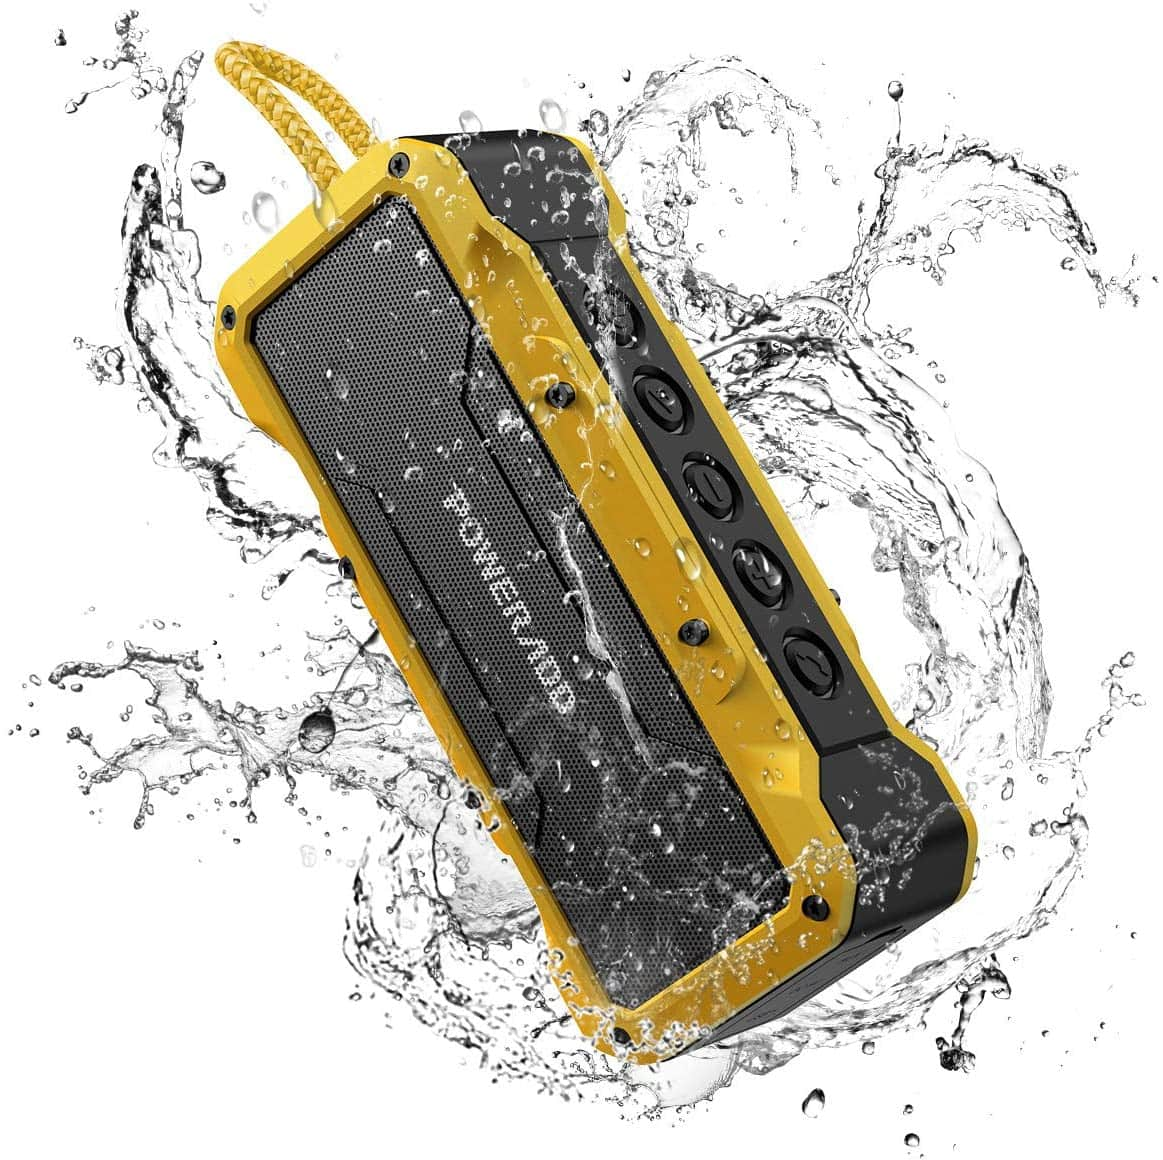 $16.99 with coupon for prime members: POWERADD MusicFly II 36W Portable IPX7 Waterproof Bluetooth Speaker (Yellow)H